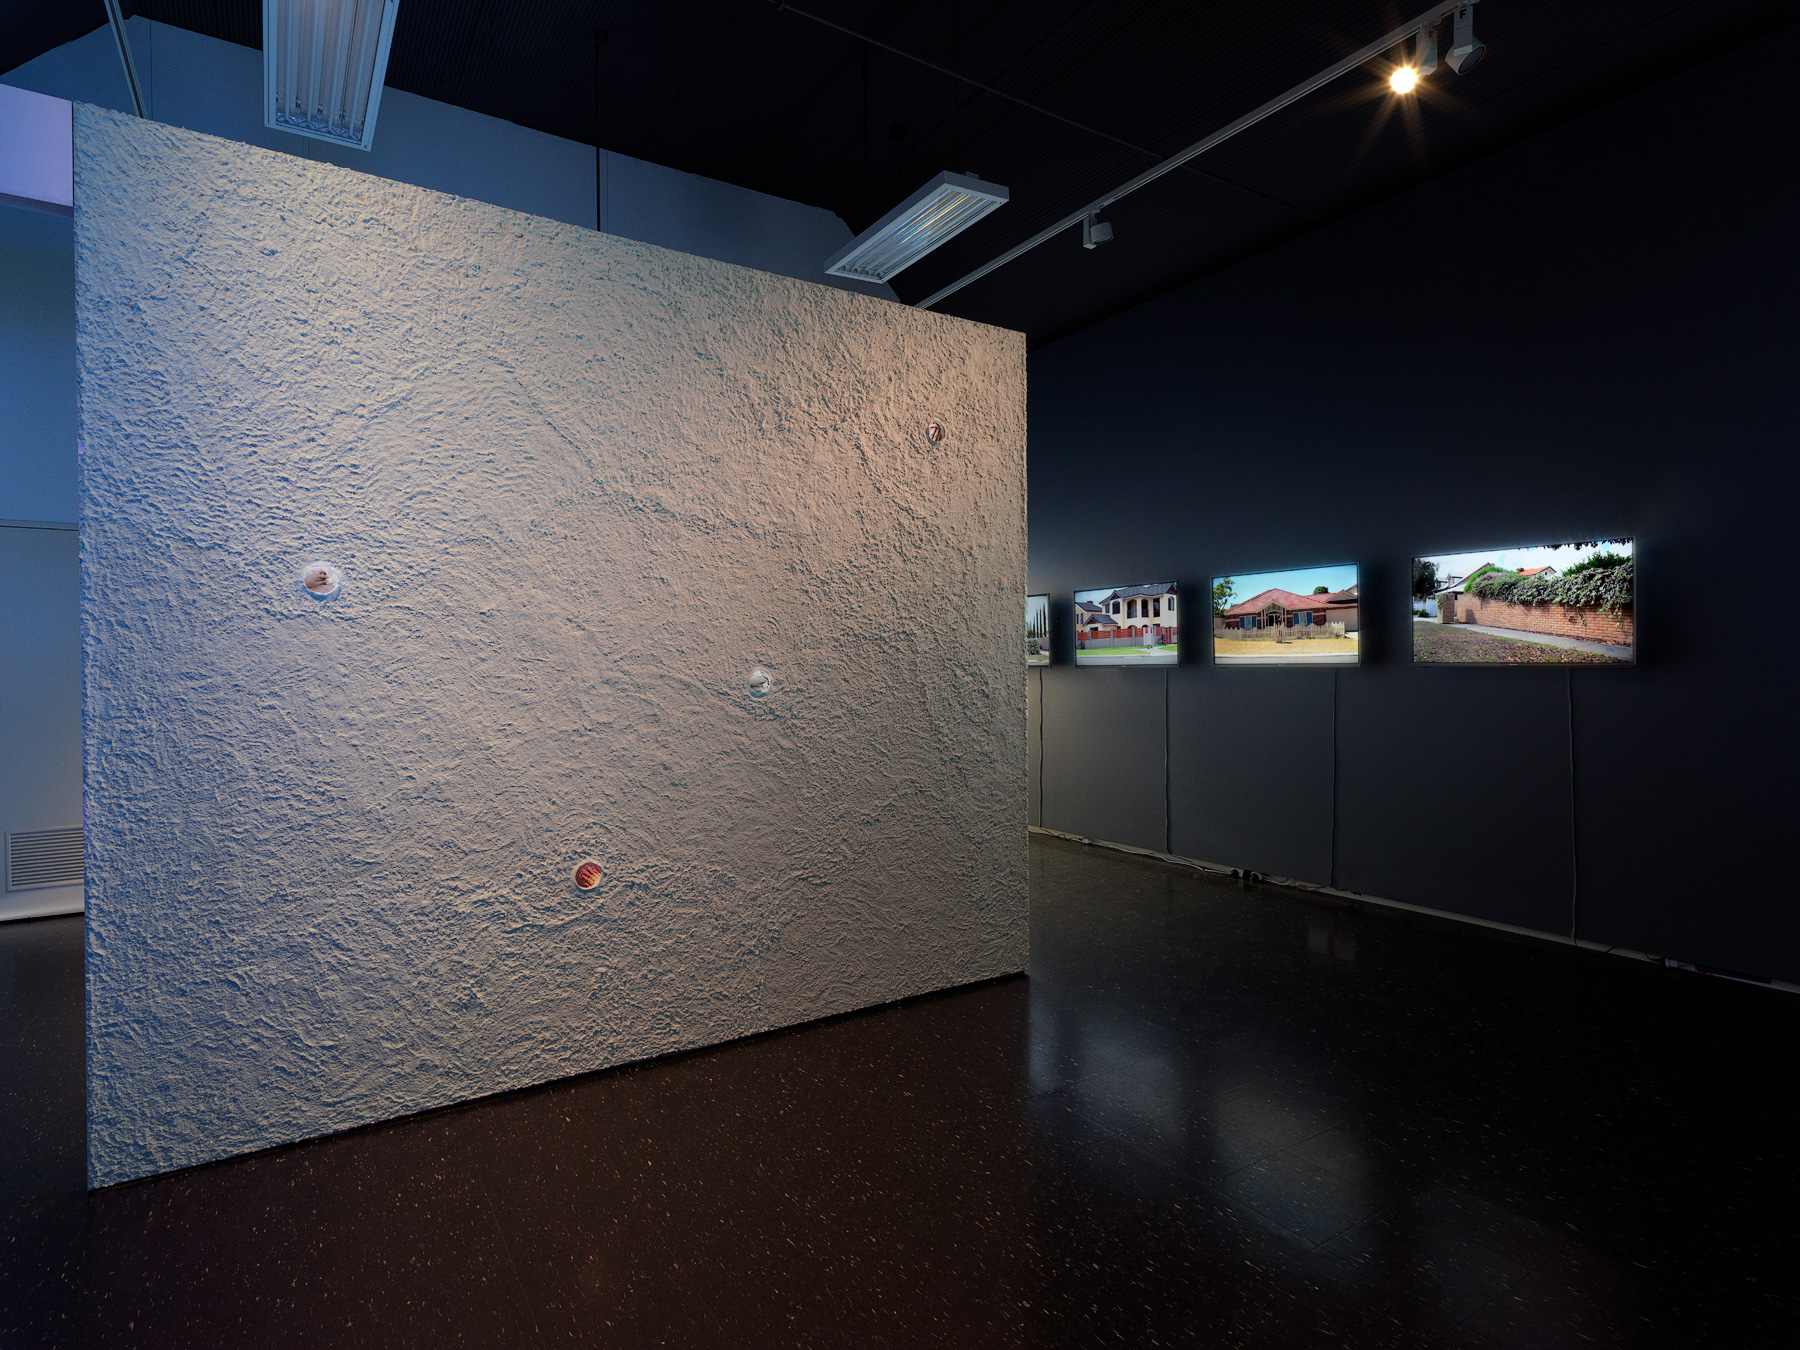 Installation view:  TRACK  featuring Kate Power (left) and Tanya Lee (right), Adelaide Central Gallery, 2017, curated by Sasha Grbich and Andrew Purvis. Photography by Grant Hancock.